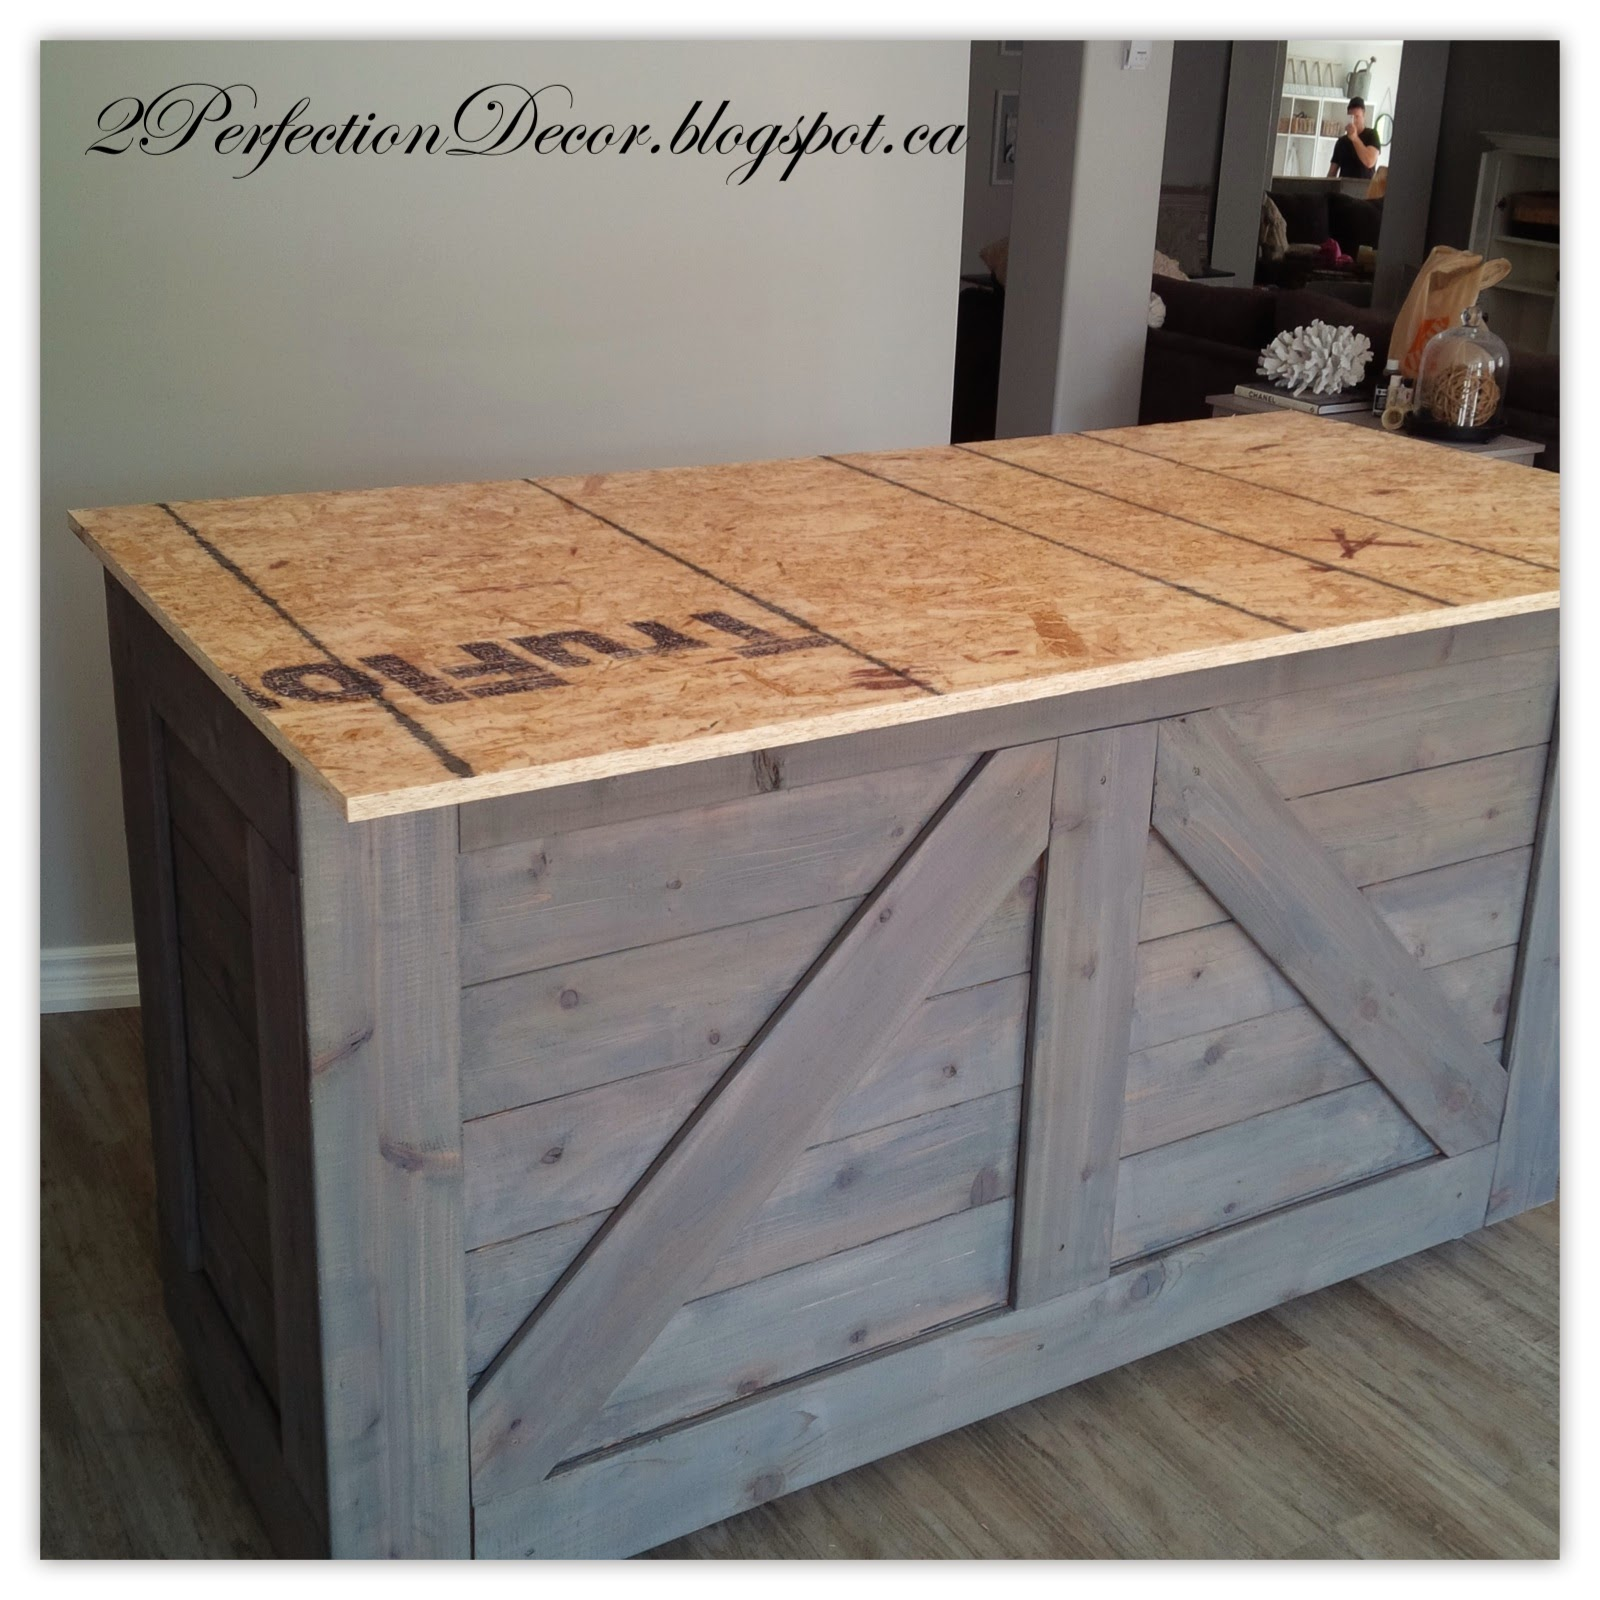 Remodelaholic ikea hack rustic bar with galvanized metal top for What to use for a bar top